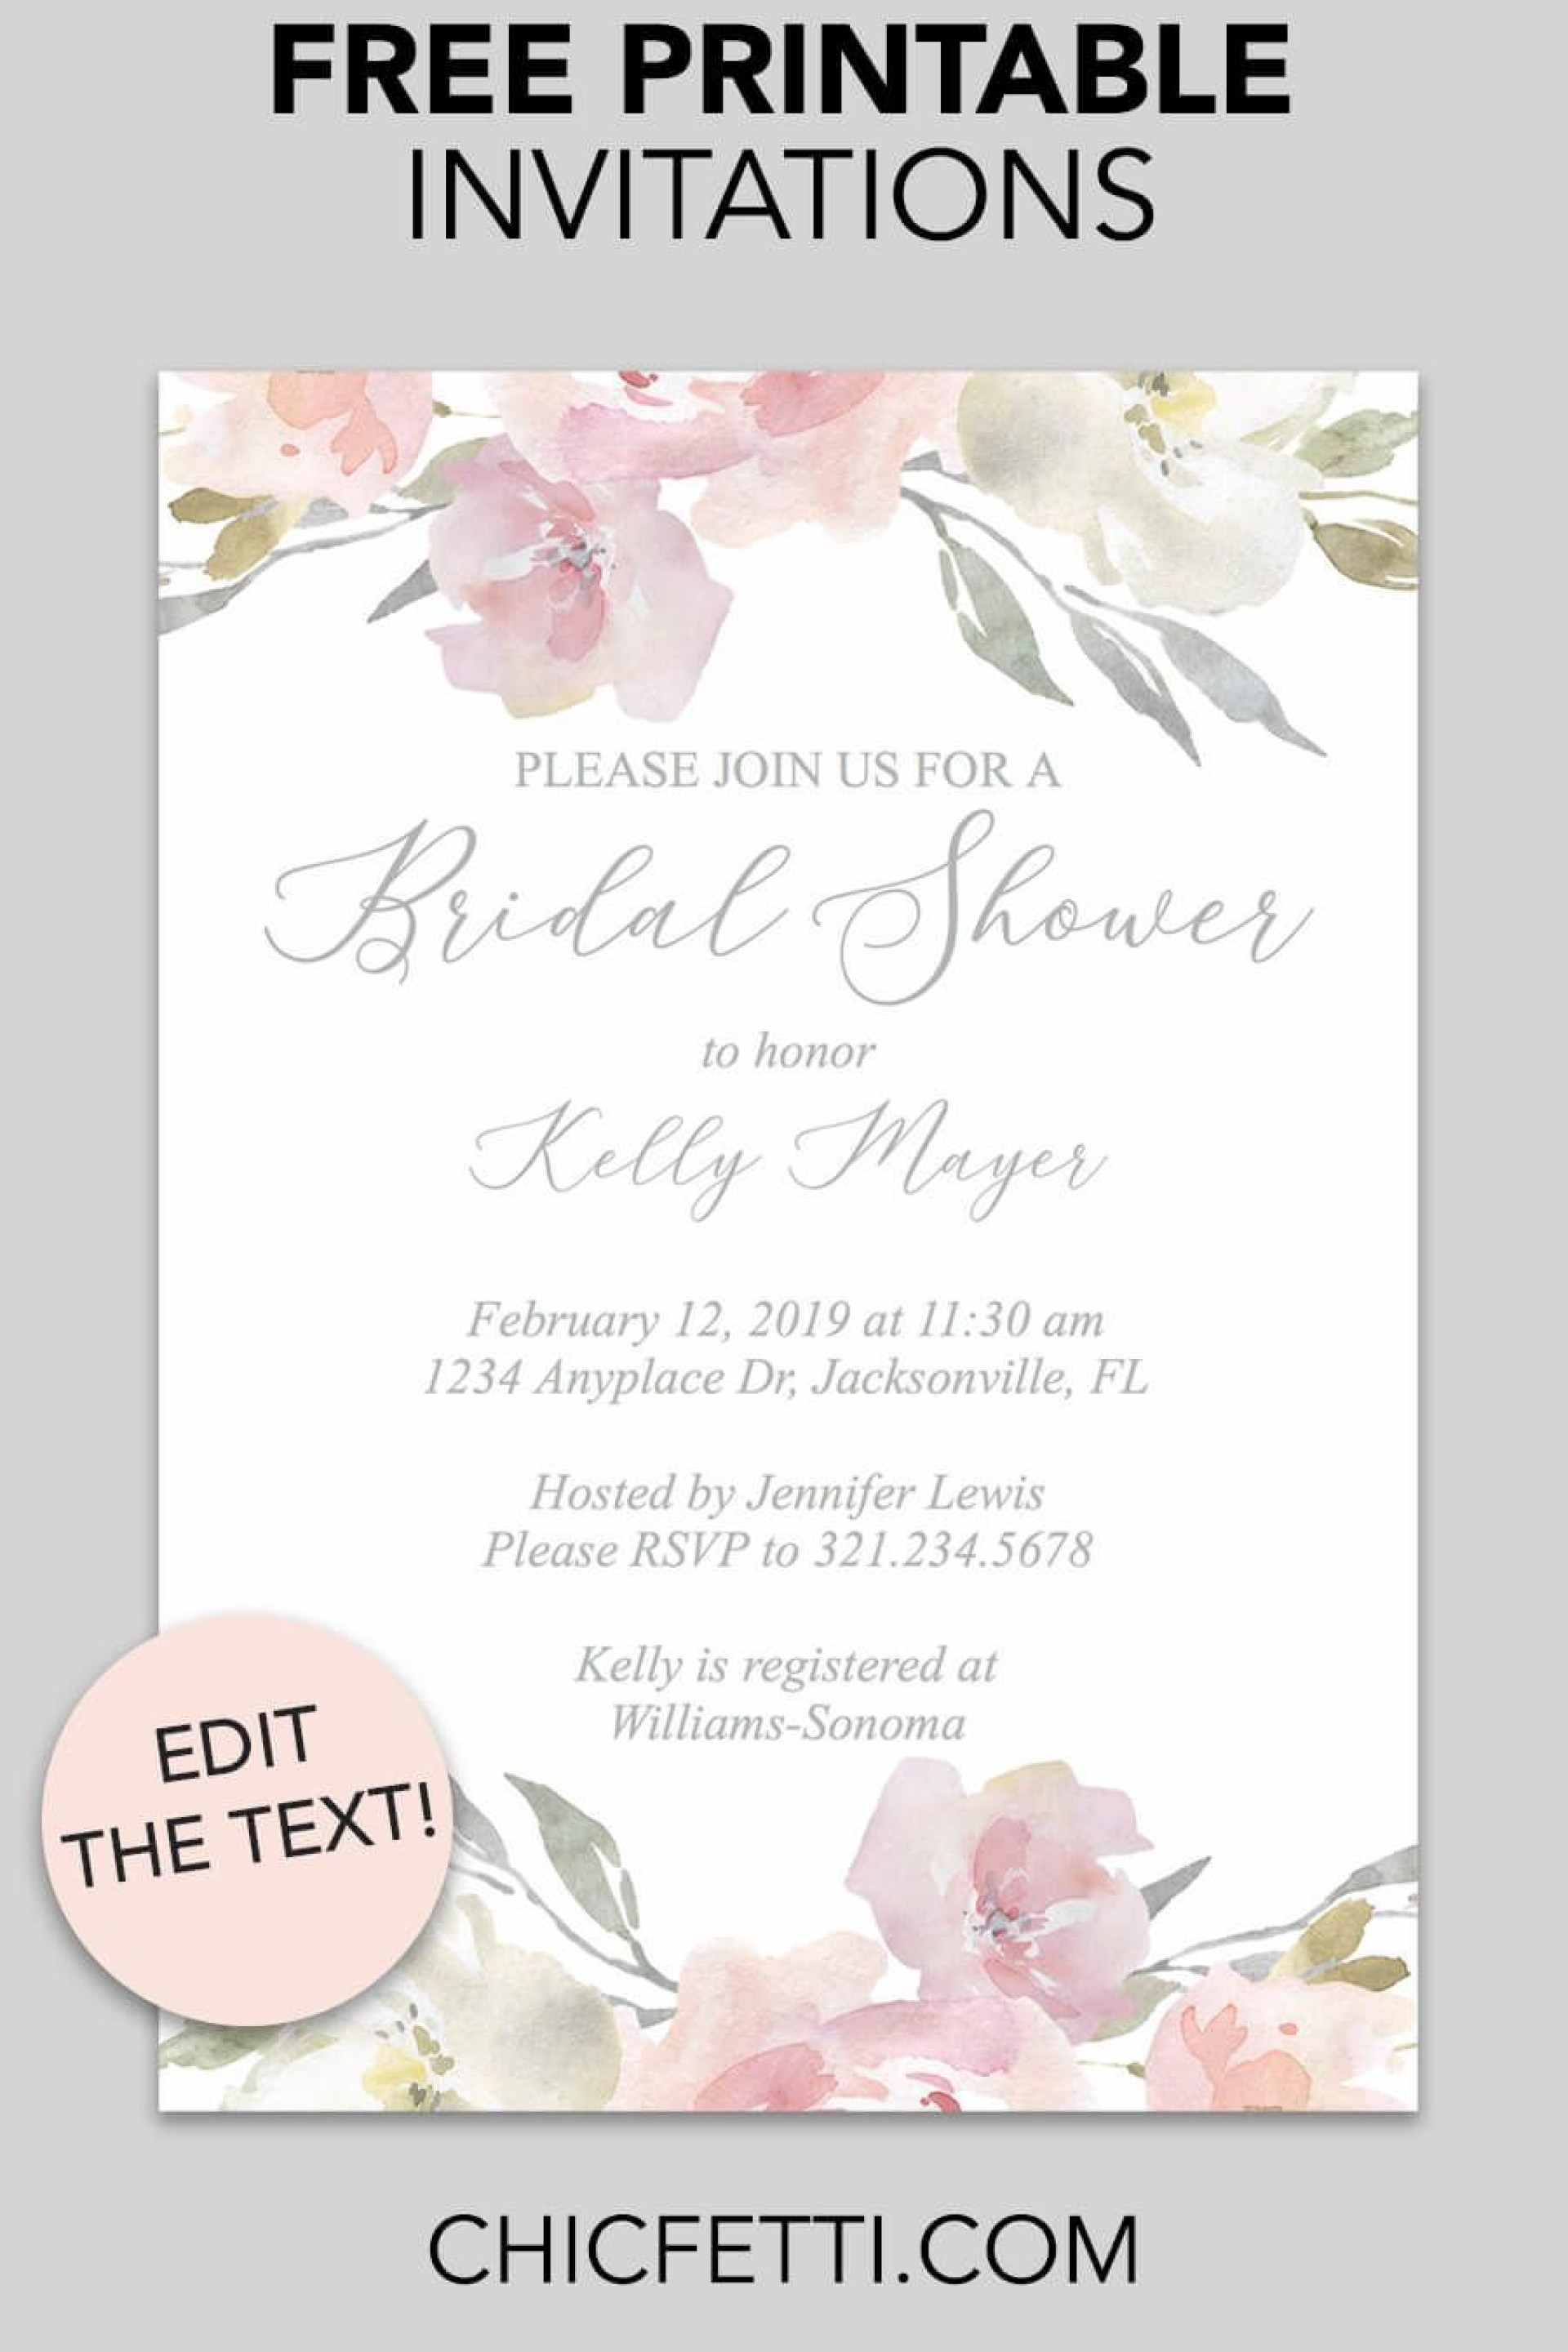 000 Magnificent Free Bridal Shower Invite Template Picture  Templates Invitation To Print Online Wedding For Microsoft Word1920